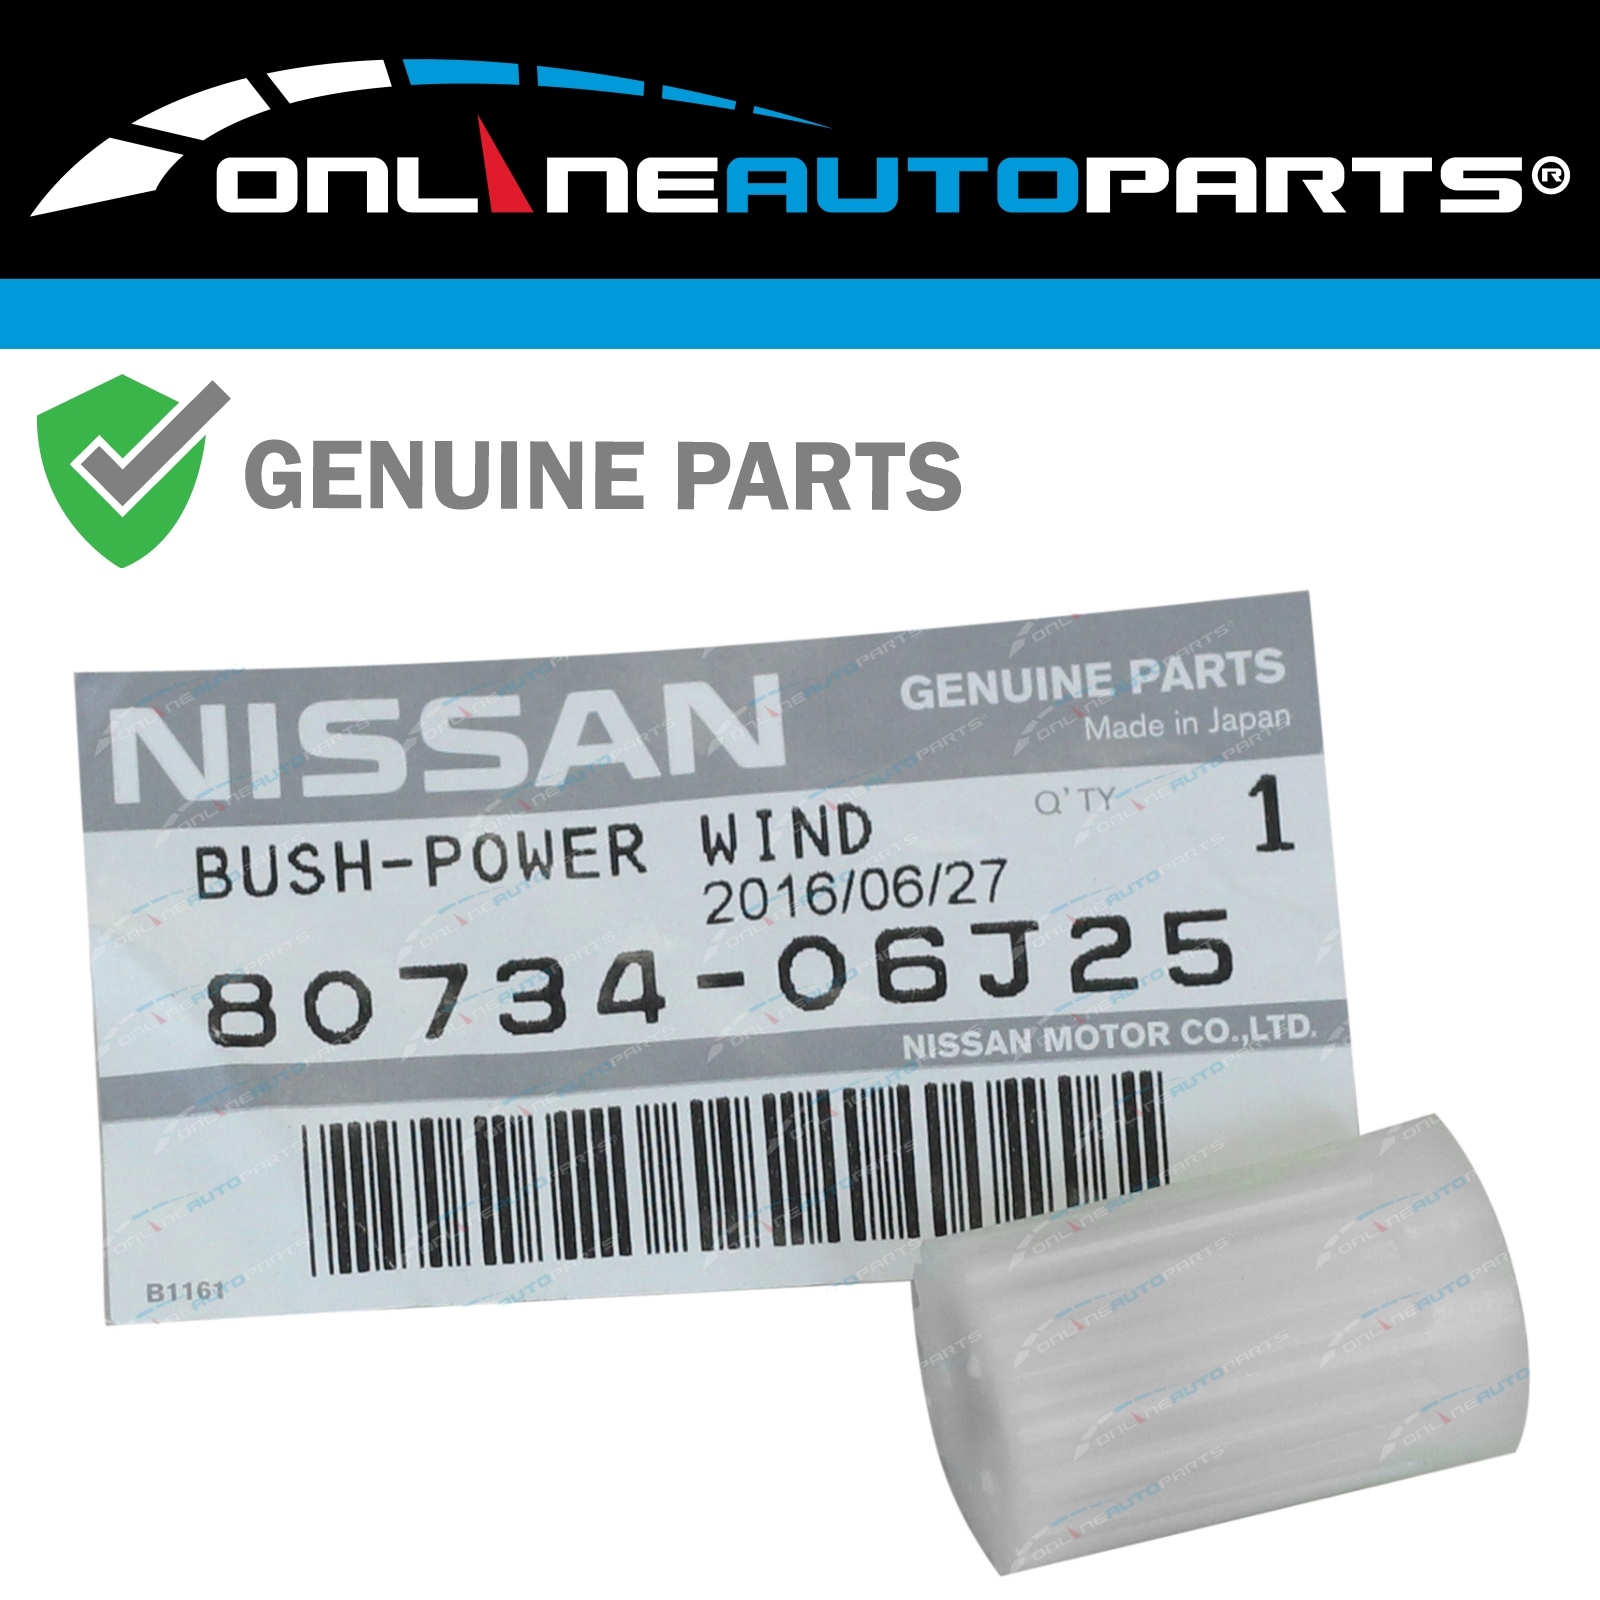 WINDOW LIFT MOTOR NEW fits NISSAN PATHFINDER 1988-1995 RIGHT FRONT//REAR